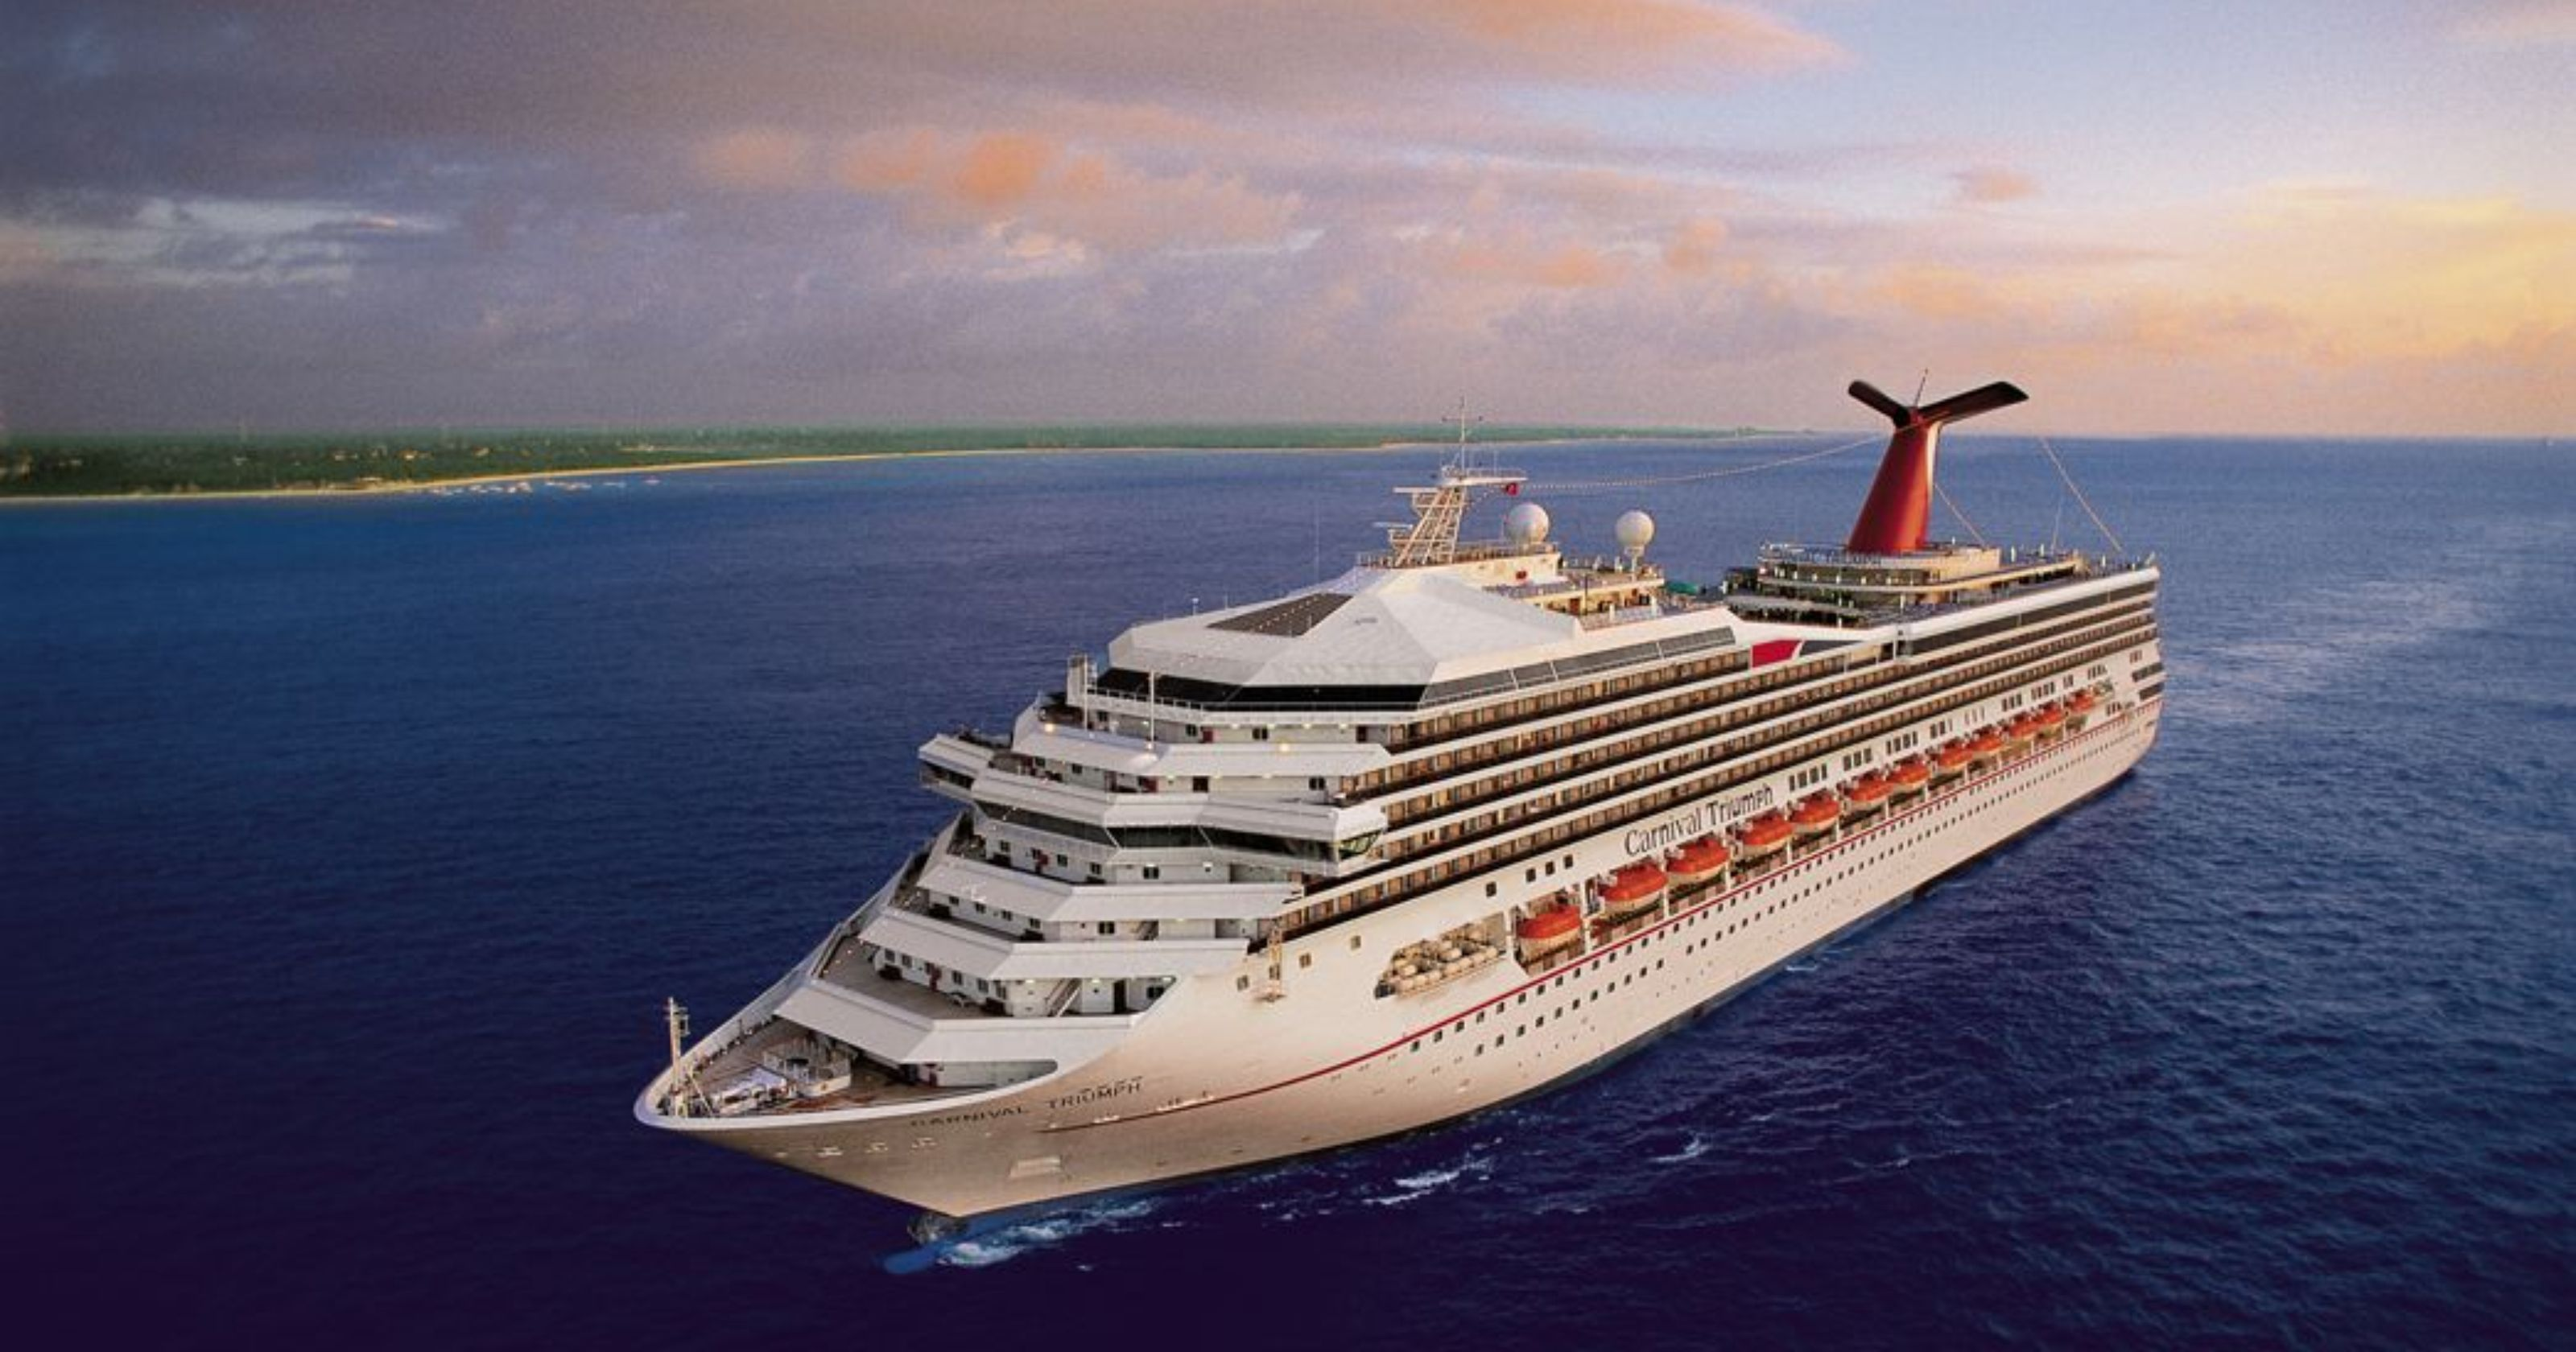 Woman falls overboard from cruise ship after leaving New Orleans